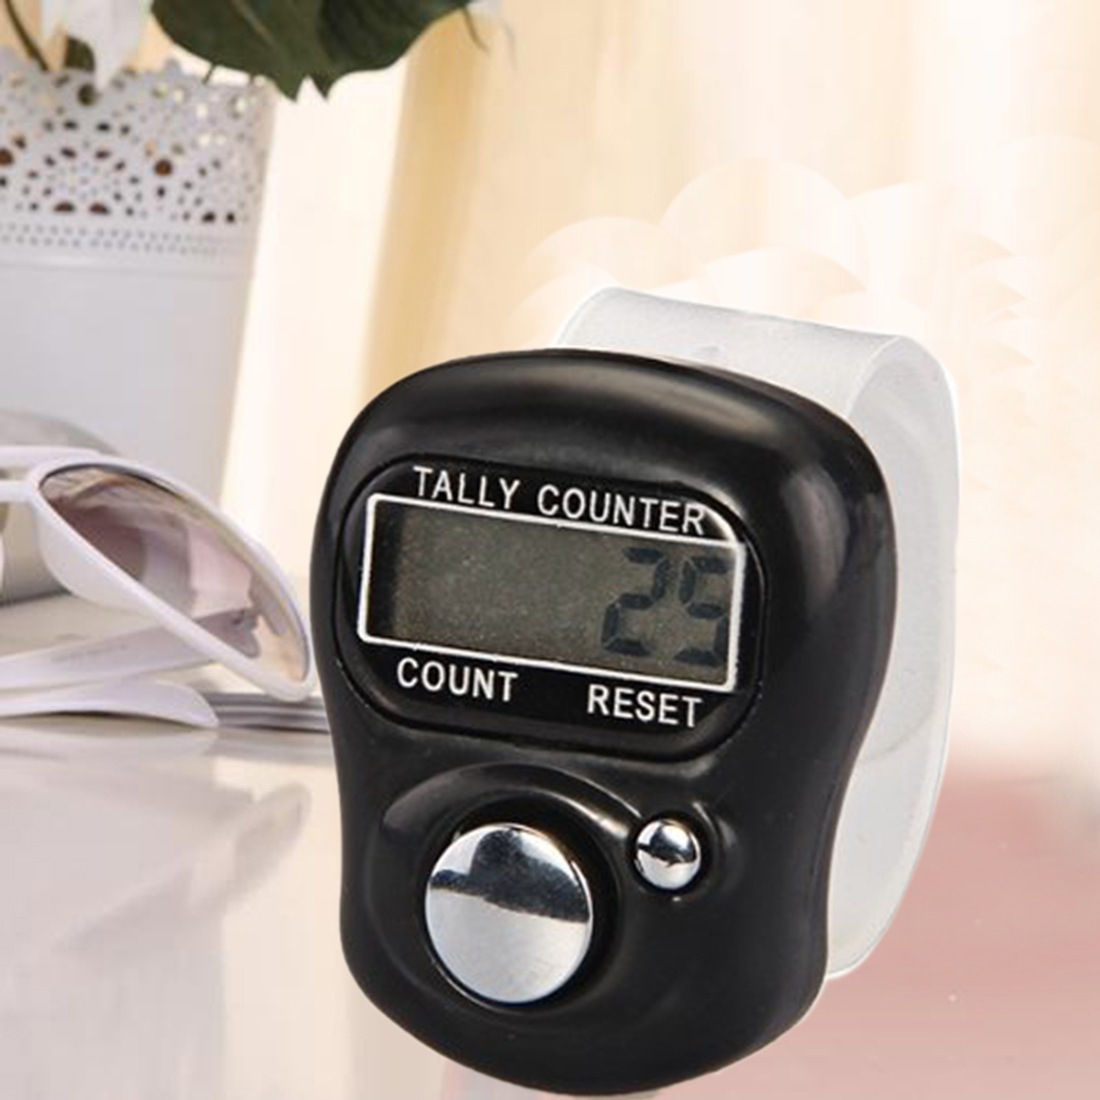 Digital Manual Counter FingerRing Tally Counter 5-Digit Ring Tally Digit LCD Electronic Counter With Battery 0-99999